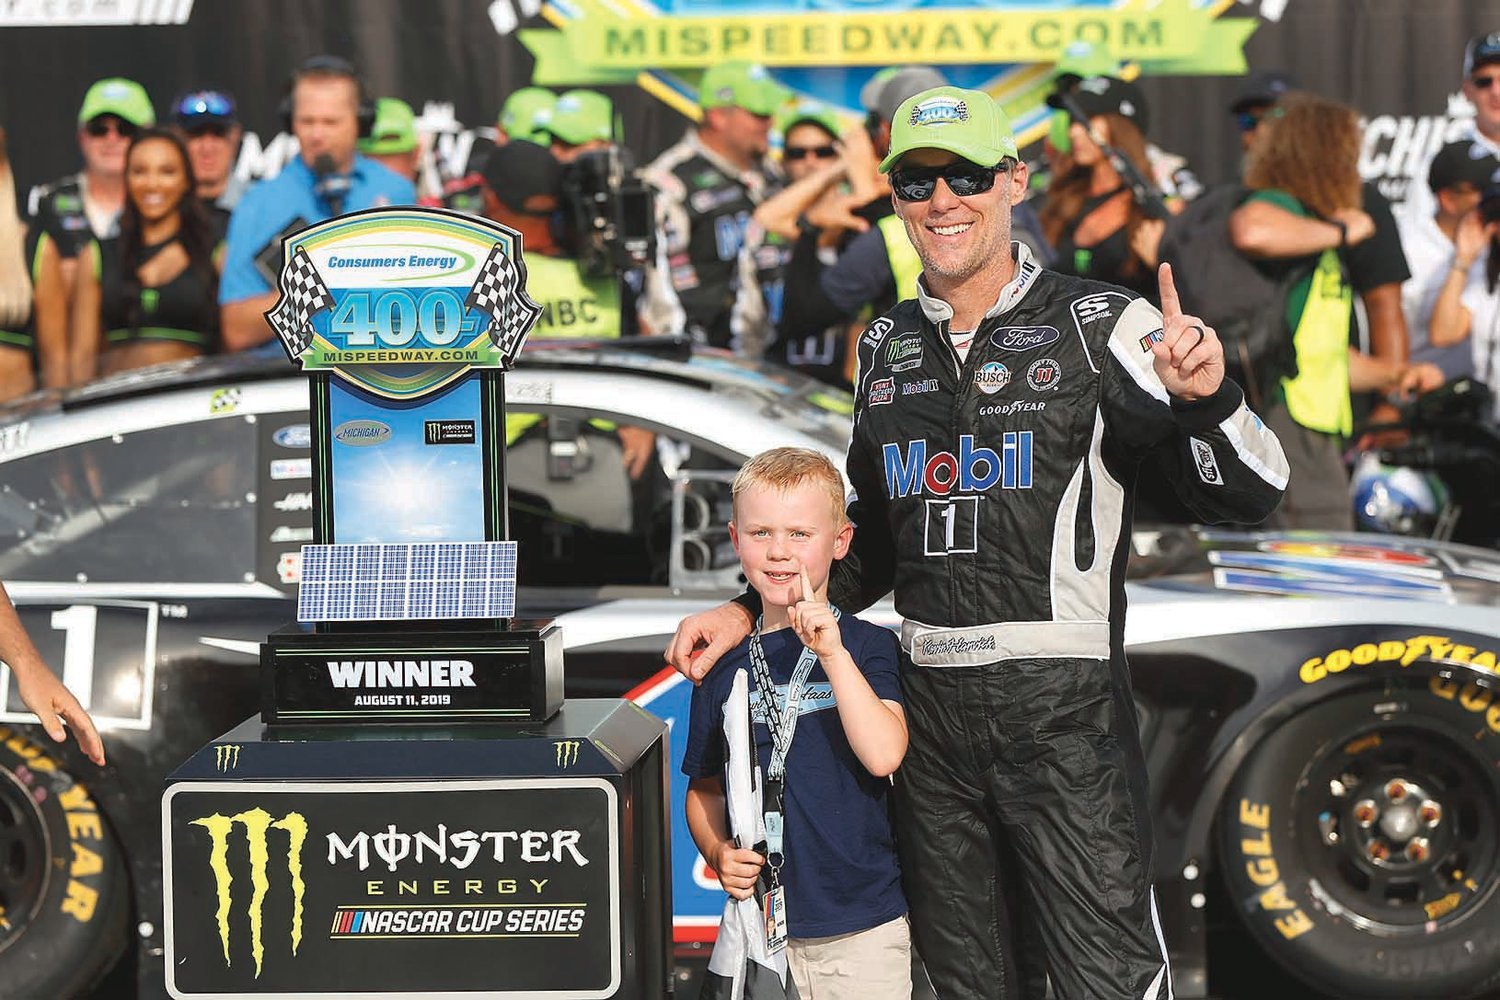 KEVIN HARVICK celebrates with his son, Keelan, after winning Sunday's NASCAR race at Michigan International Speedway in Brooklyn, Mich.